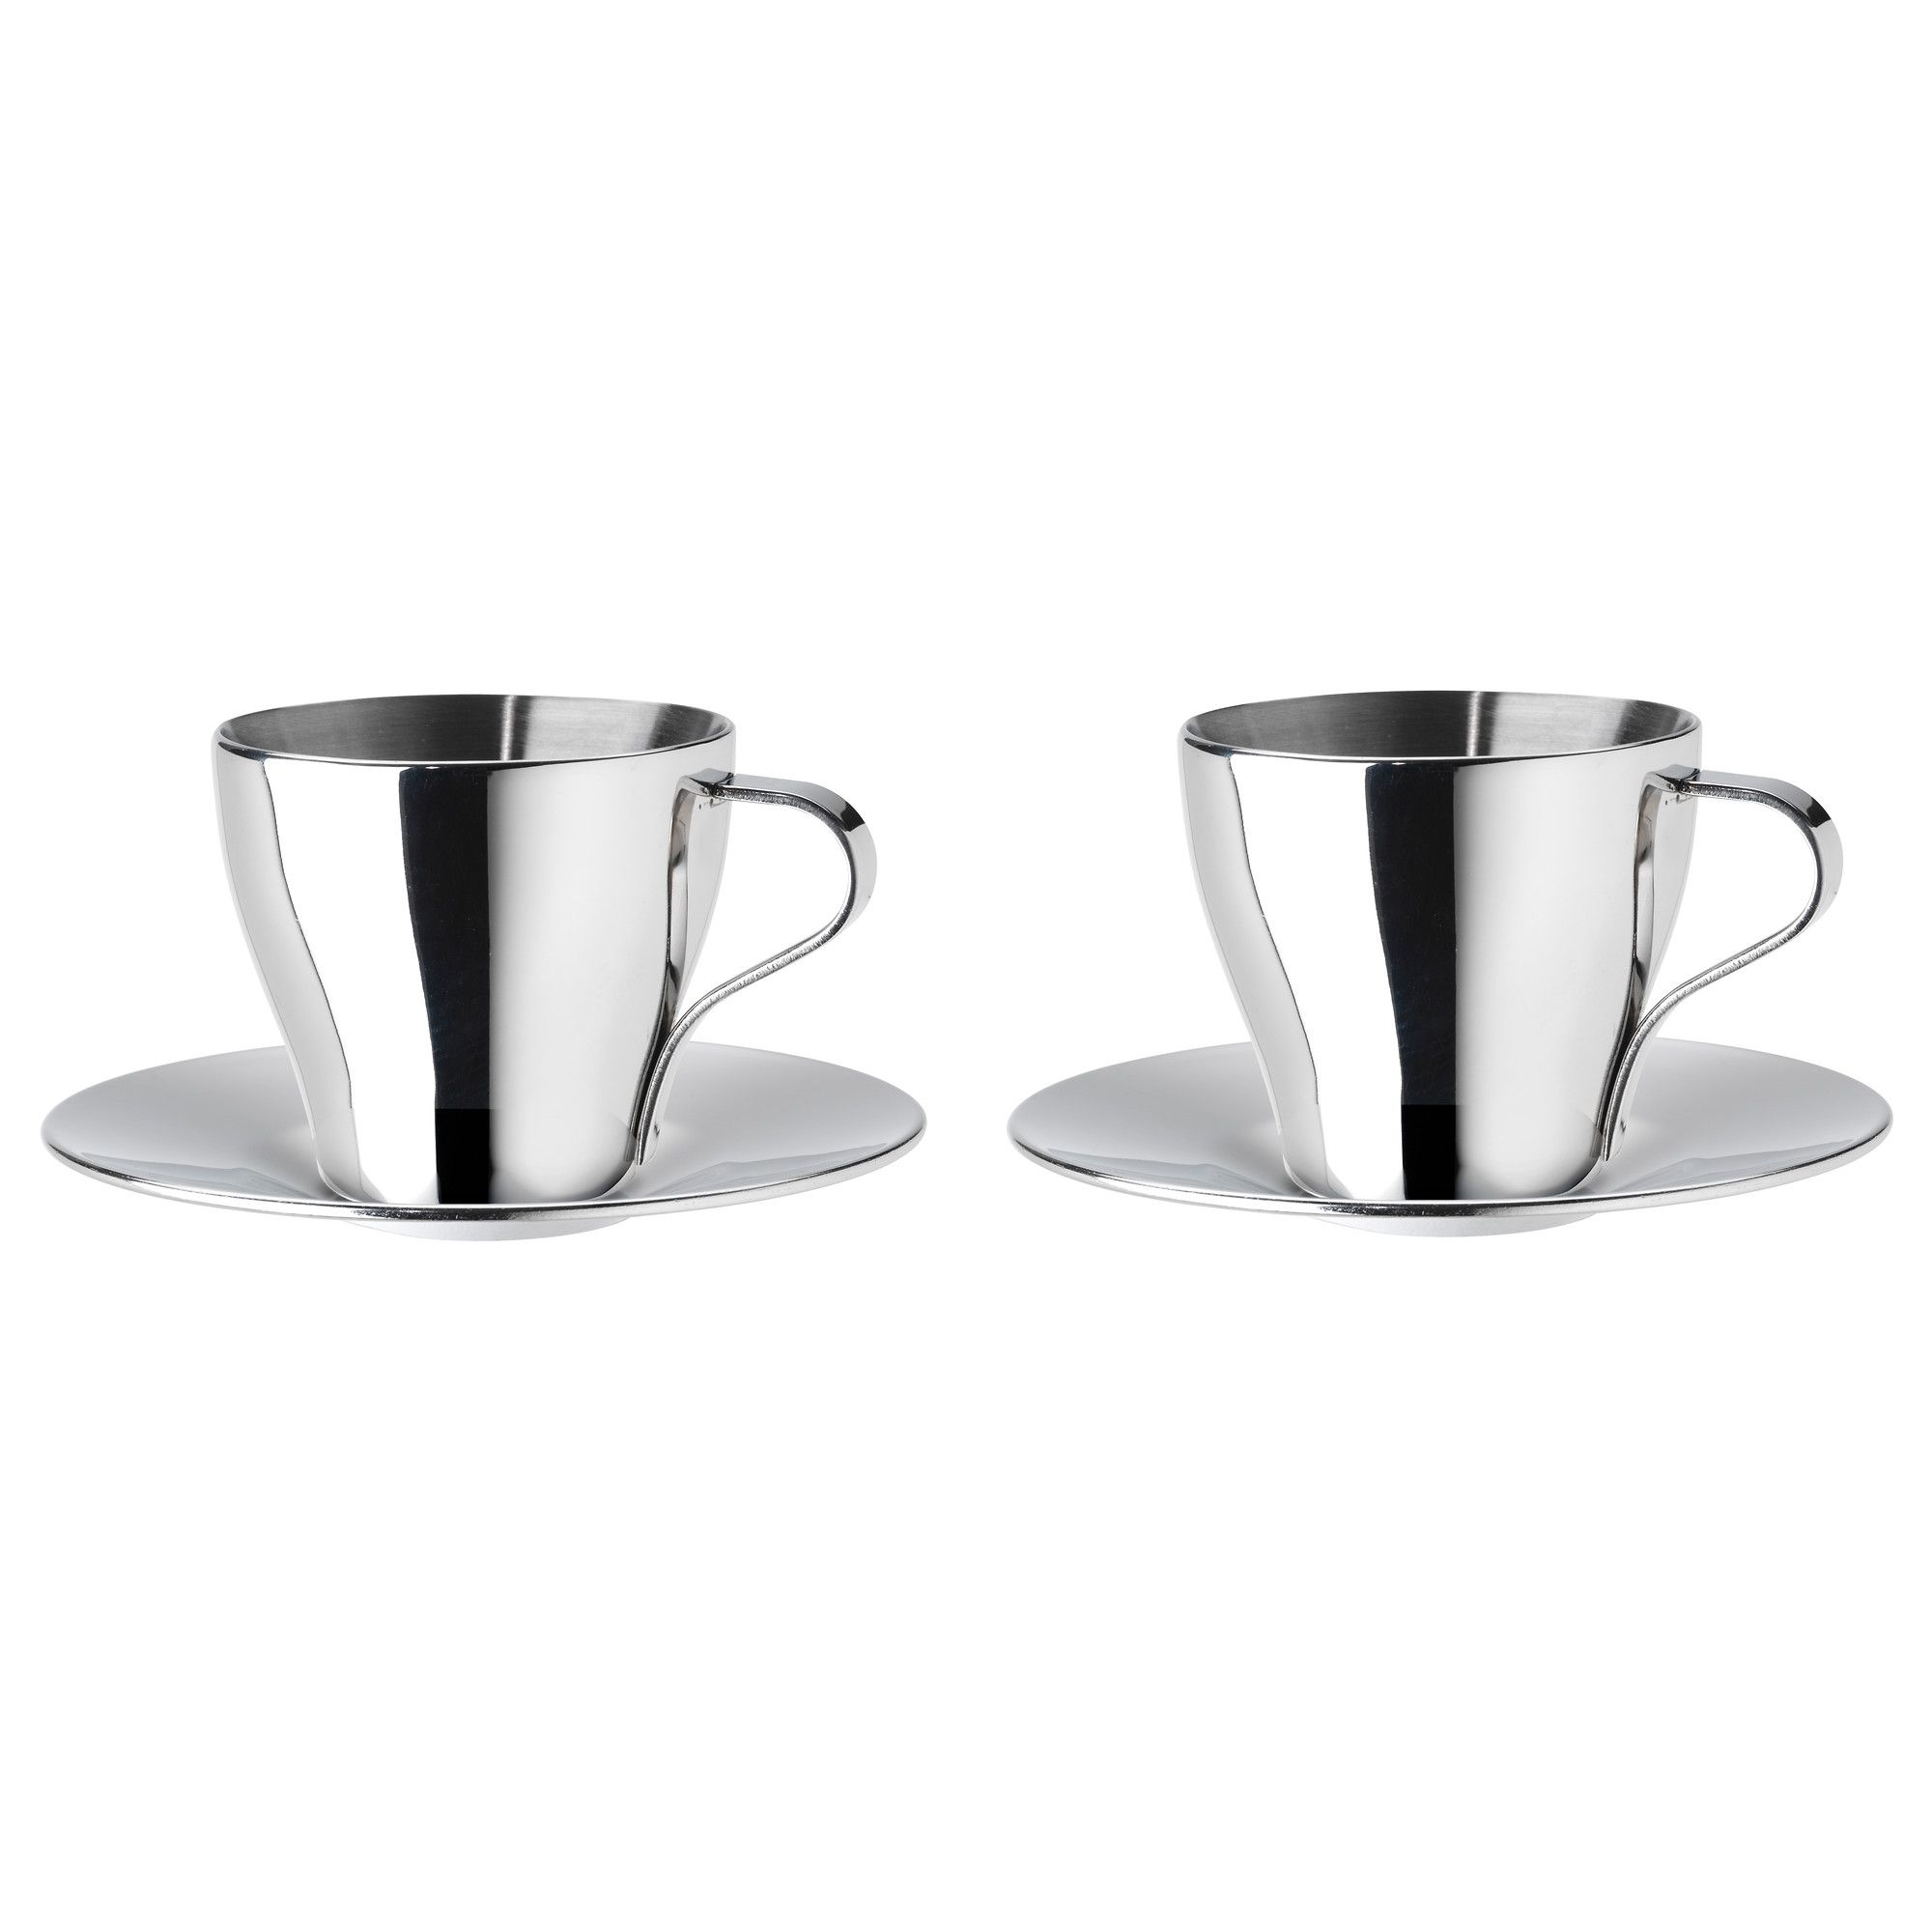 kalaset espresso cup and saucer stainless steel  espresso cups  - kalaset espresso cup and saucer  ikea i want to get the boys nonbreakable